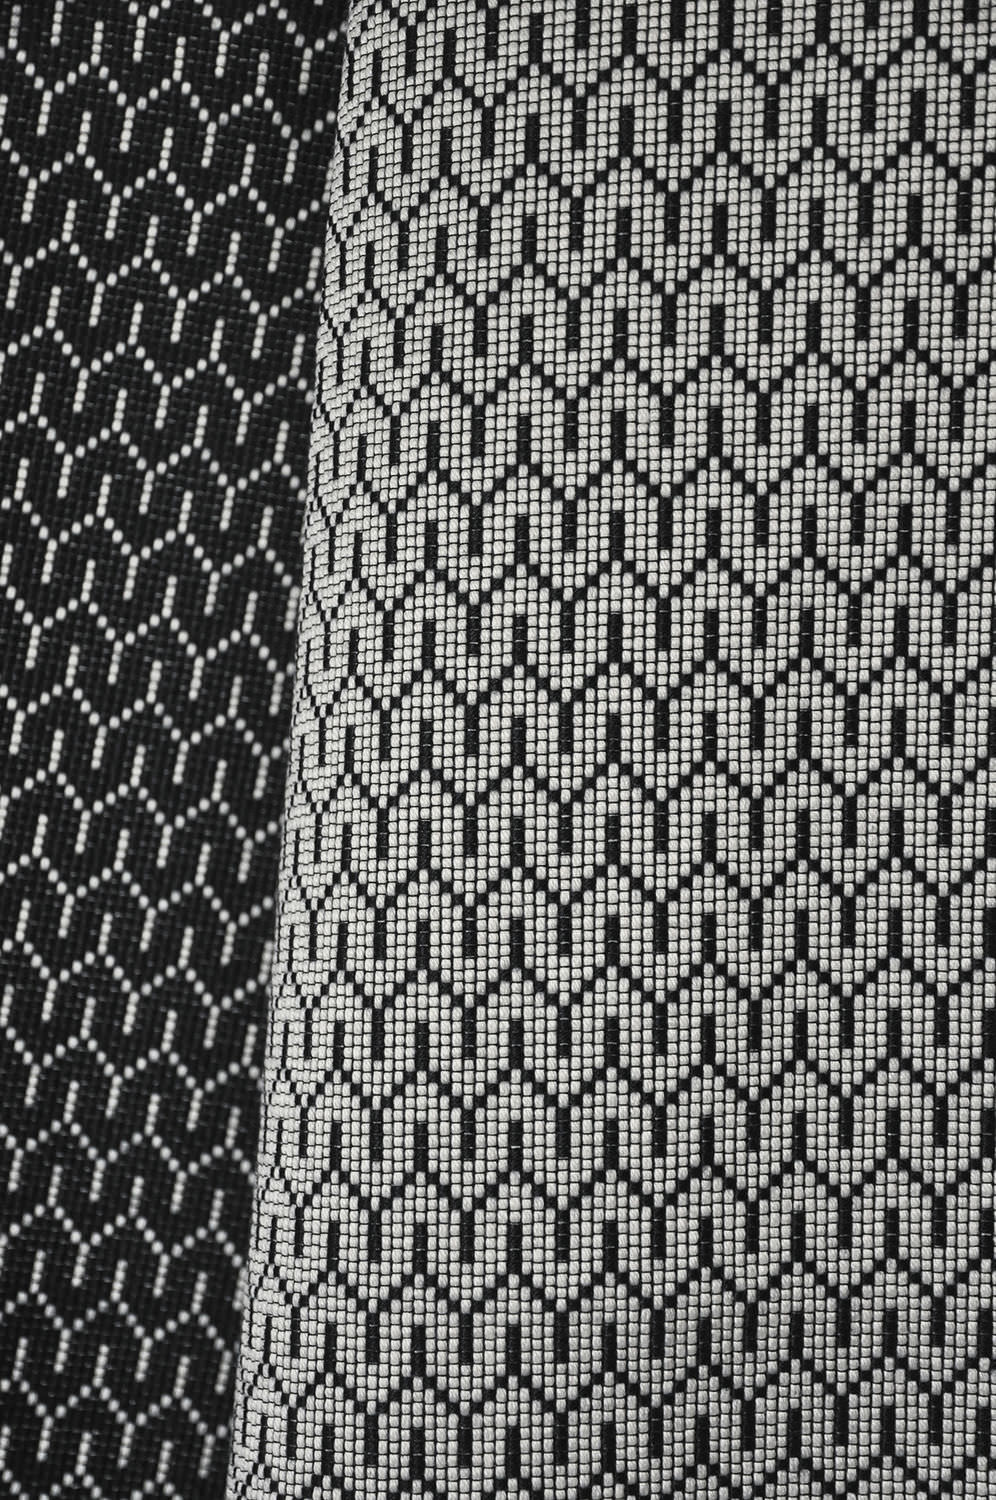 Geometric Patterned Curtains Upholstery Fabric For Curtains Geometric Pattern Trevira Cs